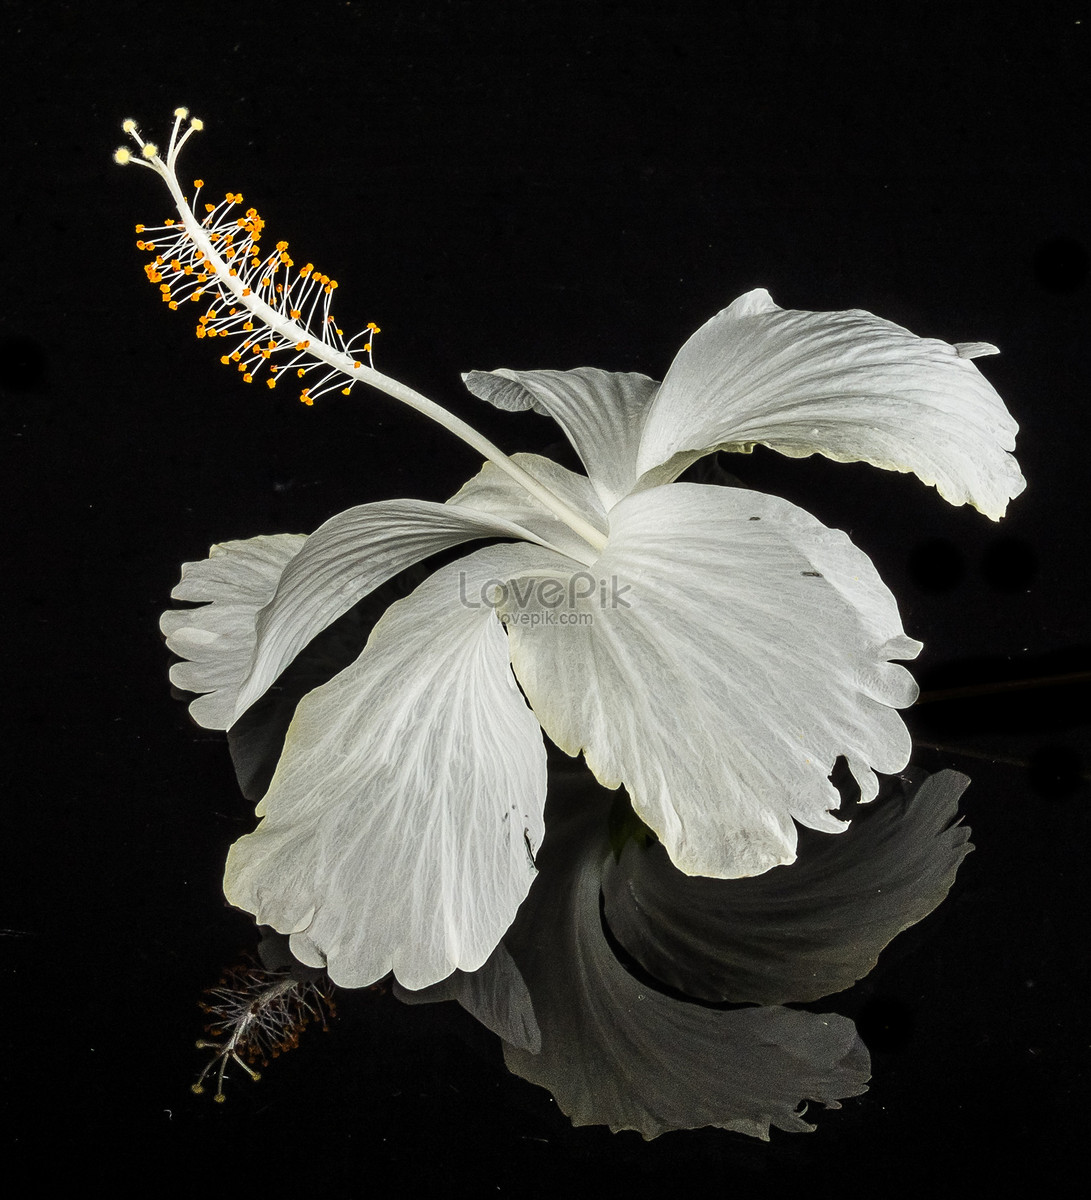 A white hibiscus flower photo imagepicture free download a white hibiscus flower izmirmasajfo